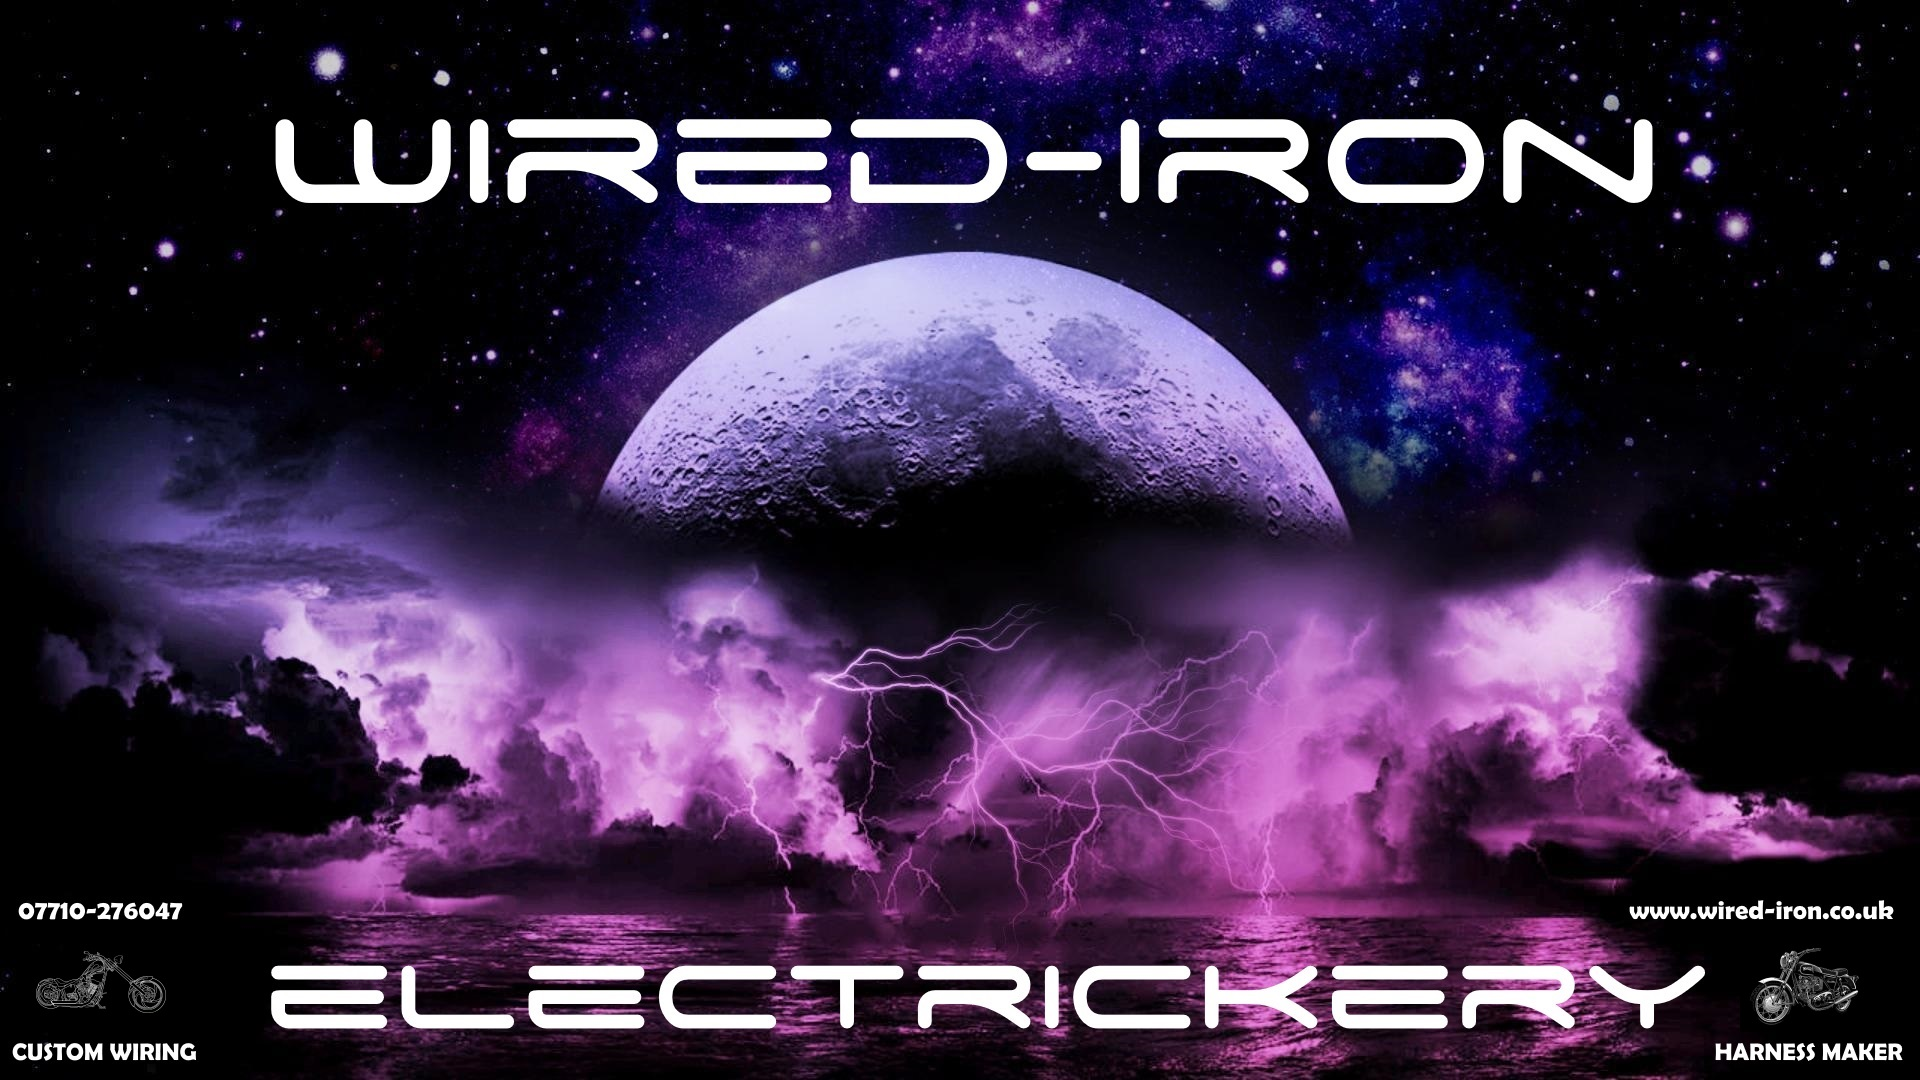 lightning and moon wired iron plus info